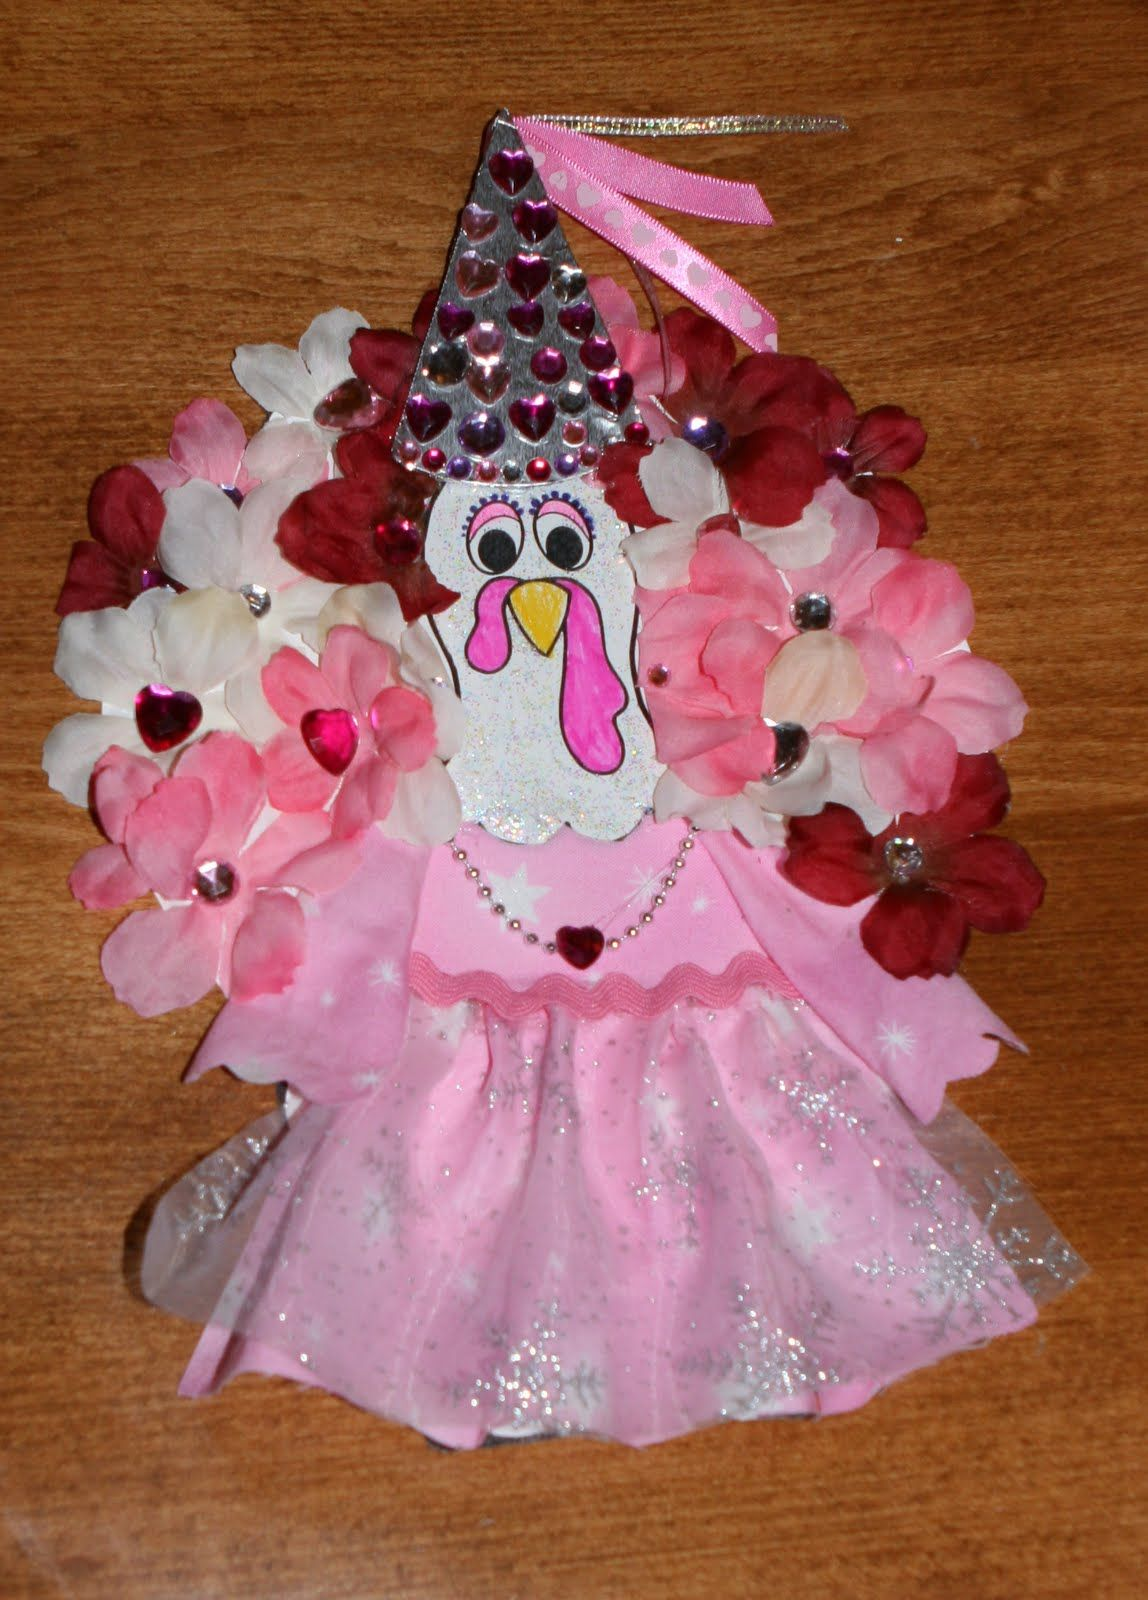 Disguise A Turkey As A Princess